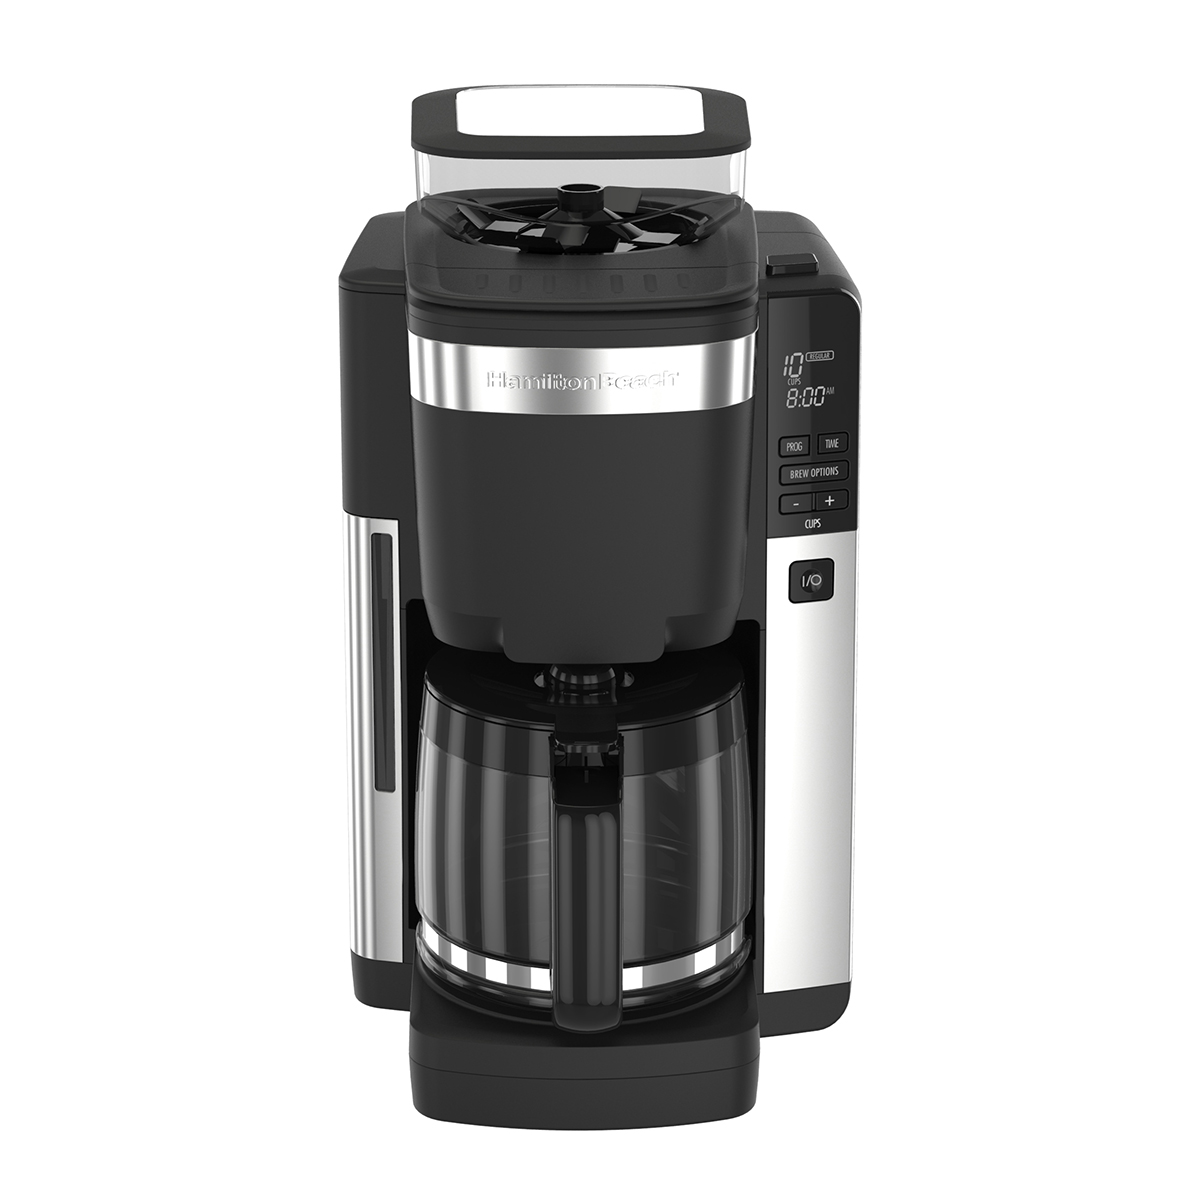 12 Cup Programmable Coffee Maker with Automatic Grounds Dispenser (45400)